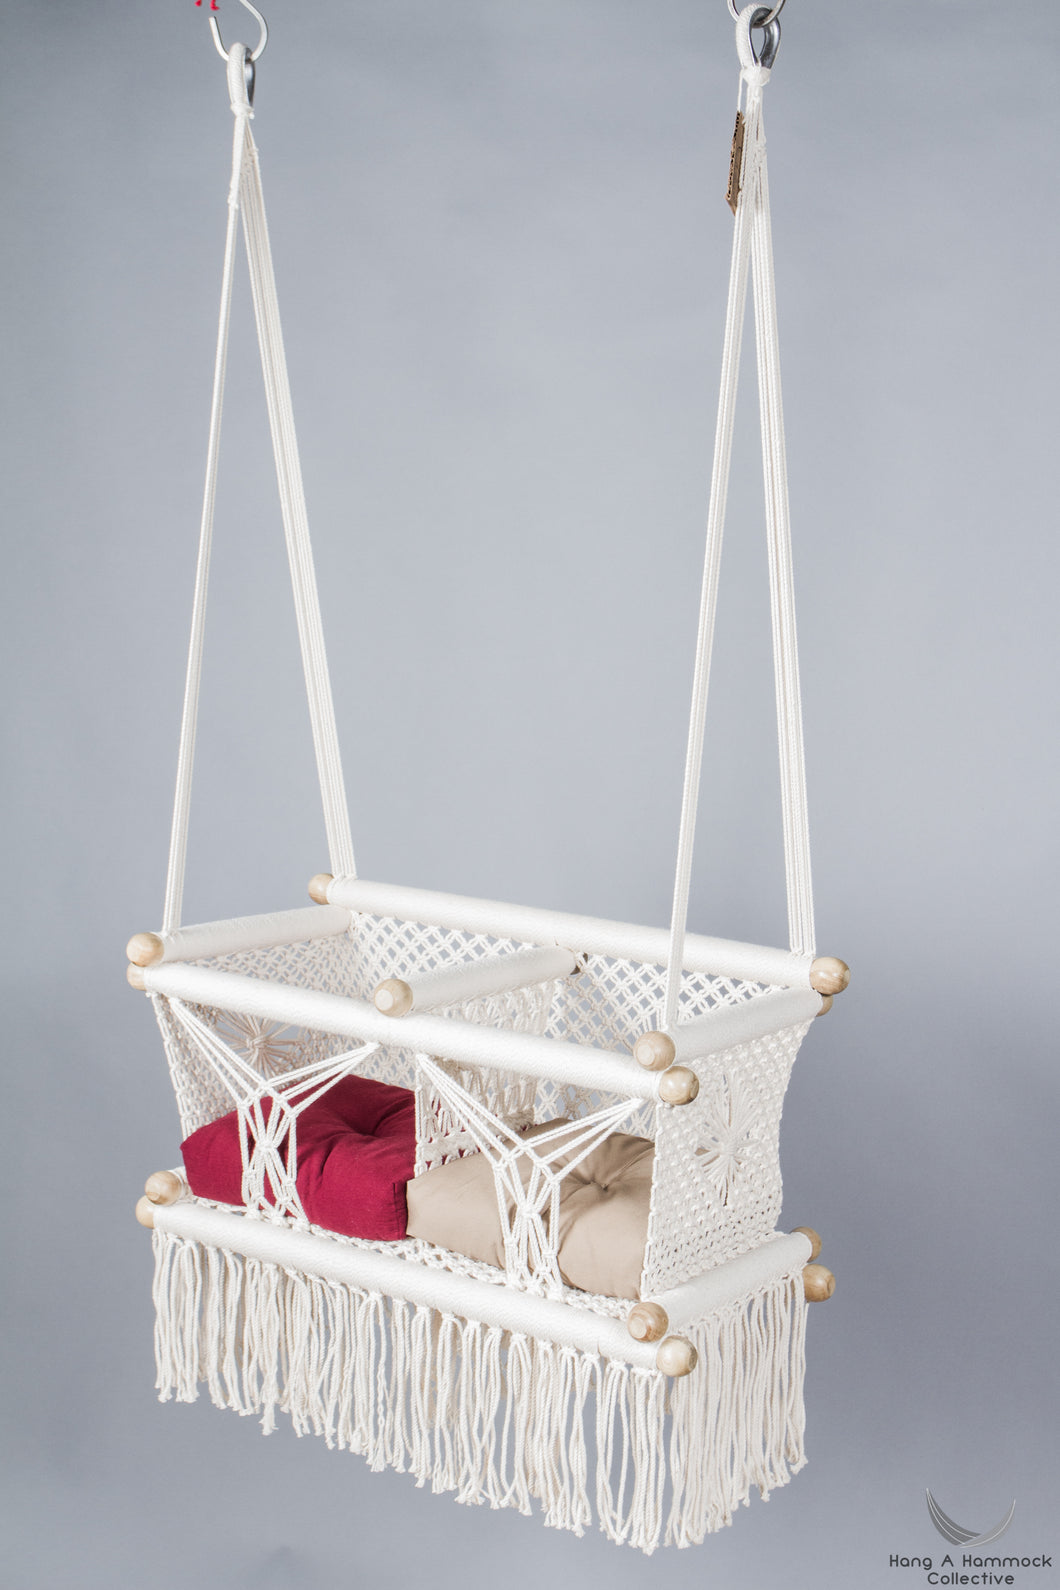 twins baby swing chair in macrame -two hanging points - ivory color - catalog photo